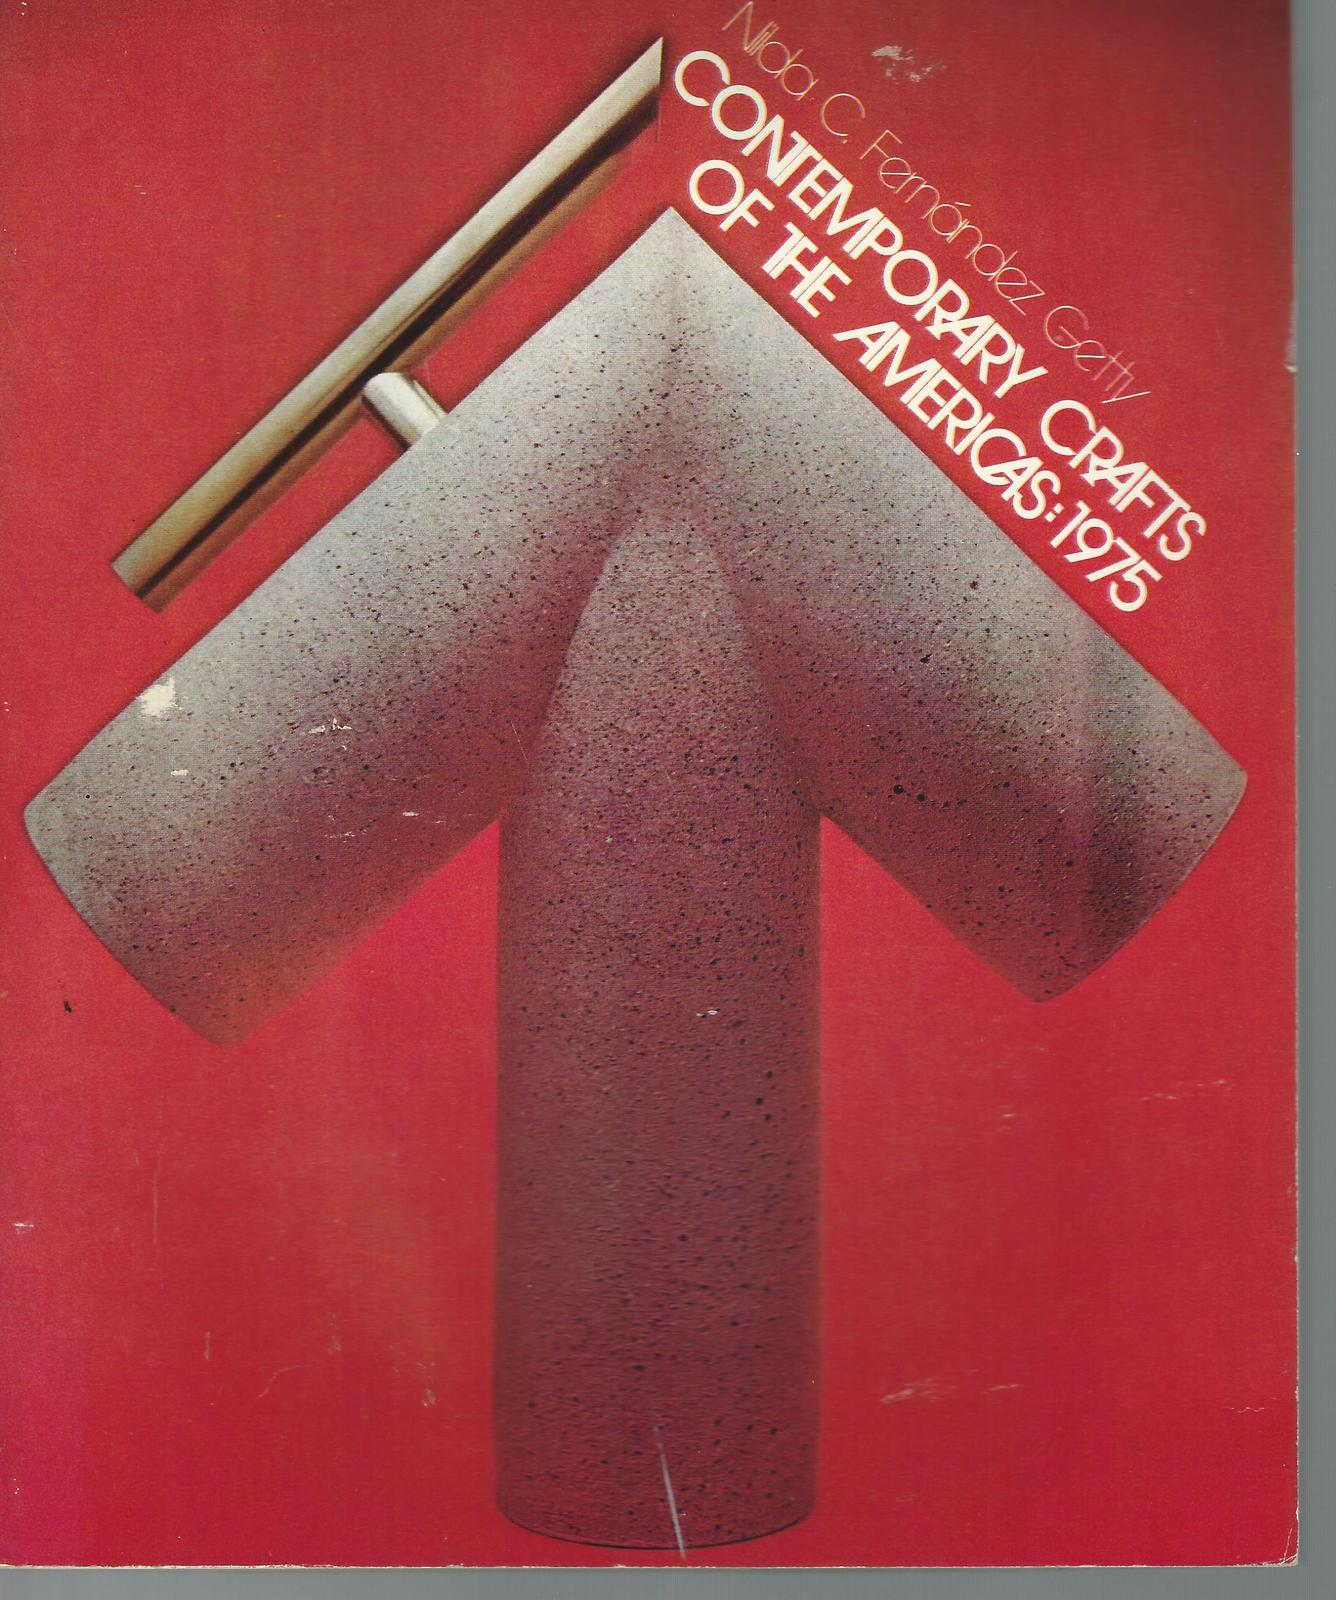 CONTEMPORARY CRAFTS OF THE AMERICAS- Nida C. GETTY,1975